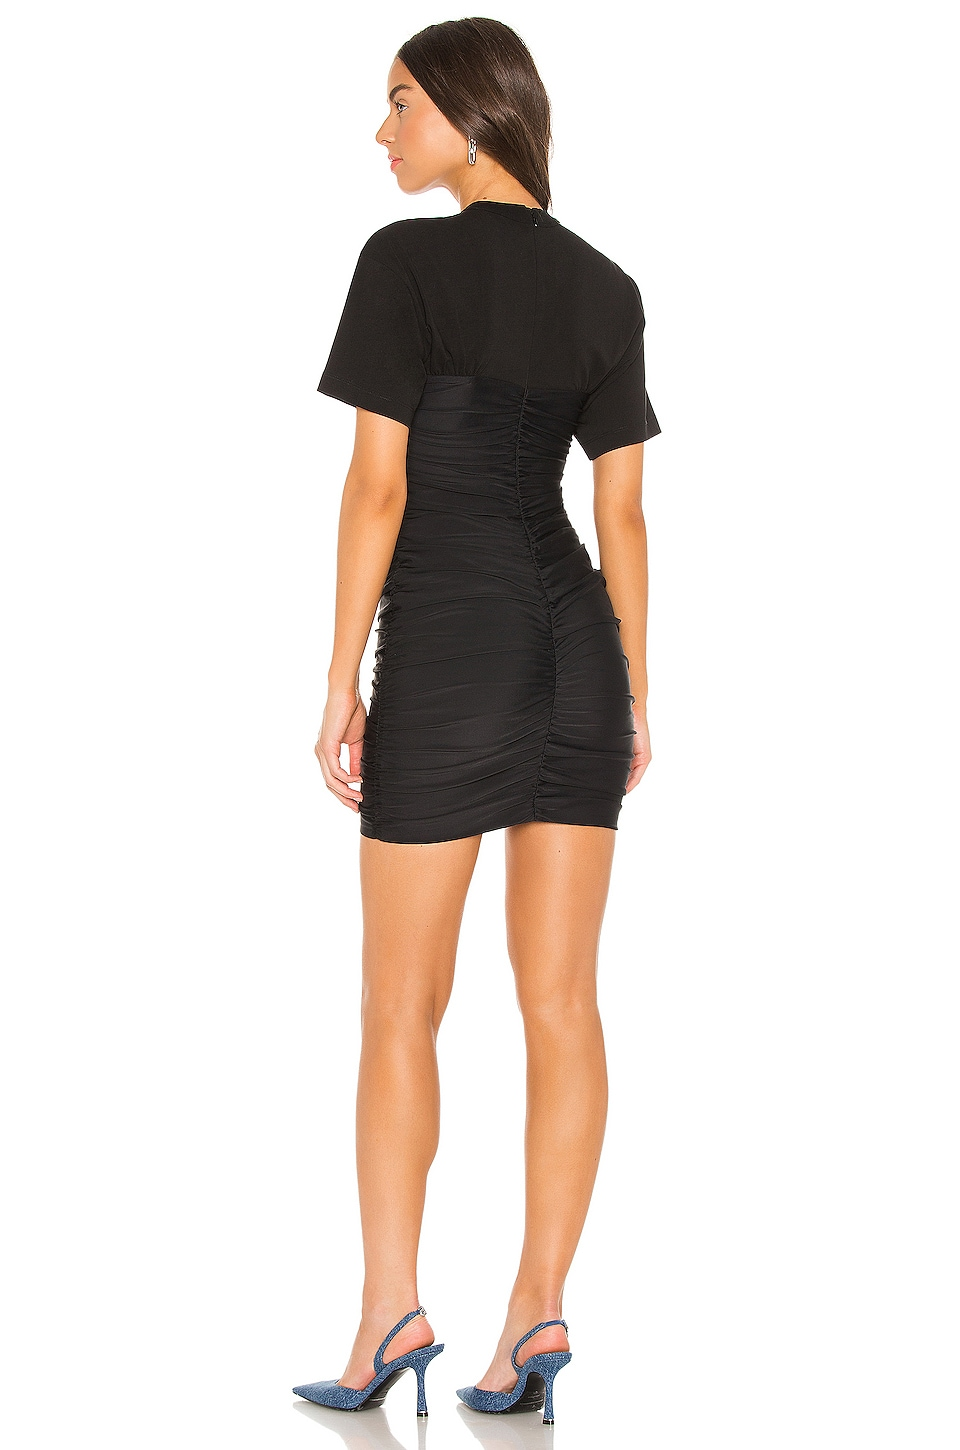 Ruched Bodycon Mini Dress, view 3, click to view large image.